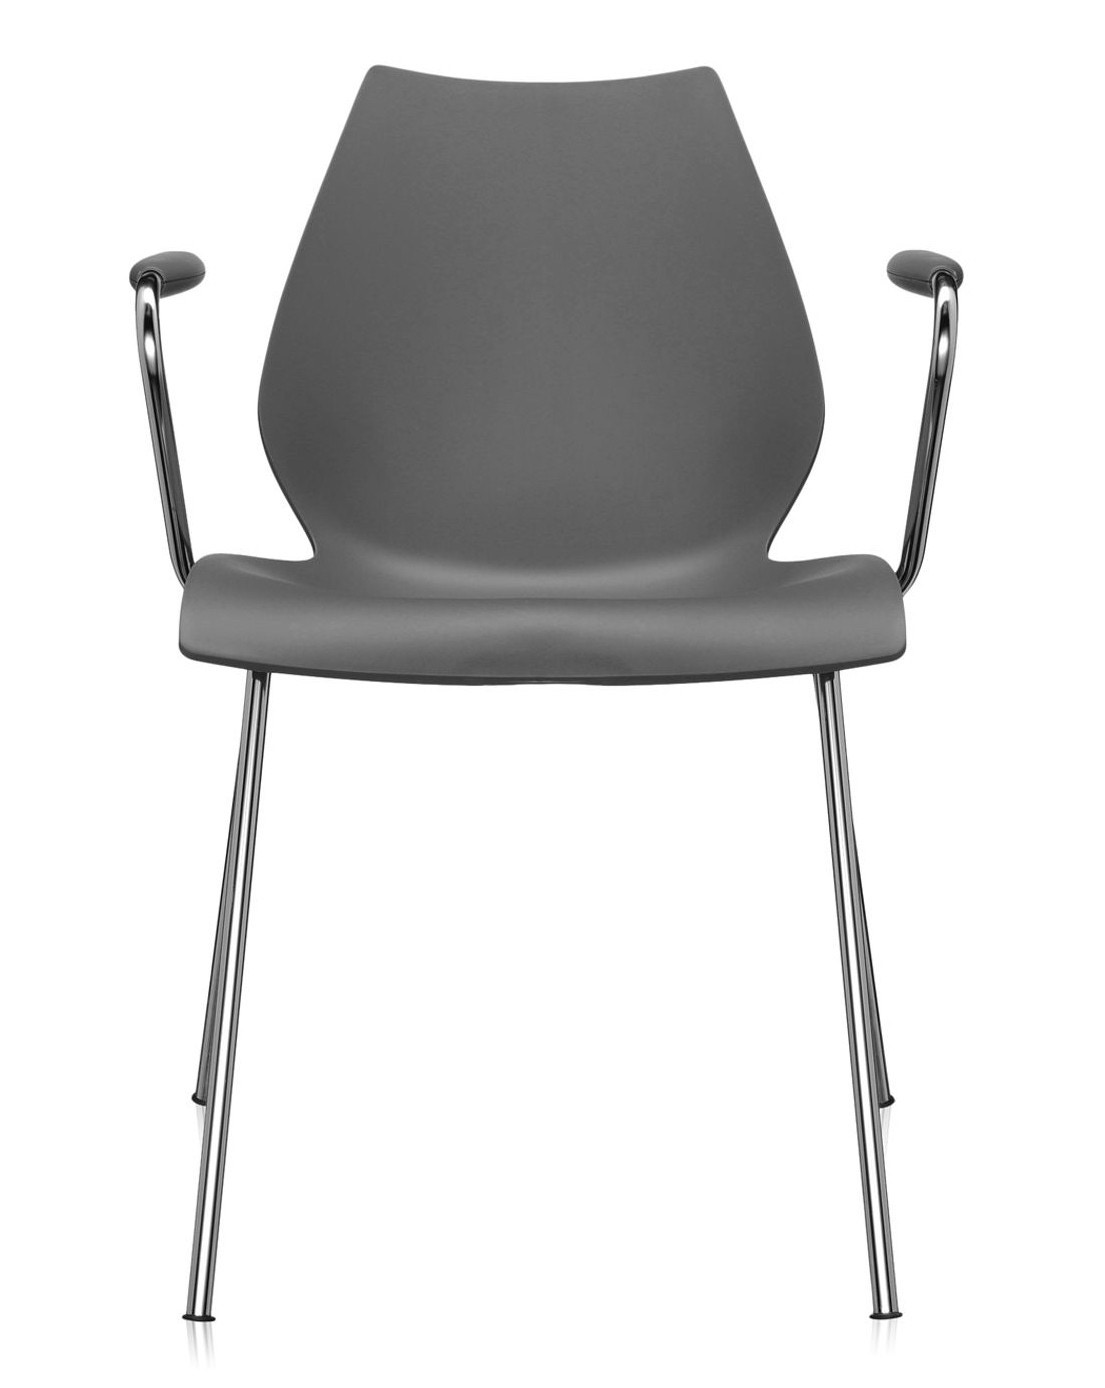 Kartell Maui Armchair (Priced Each, Sold in Sets of 2)